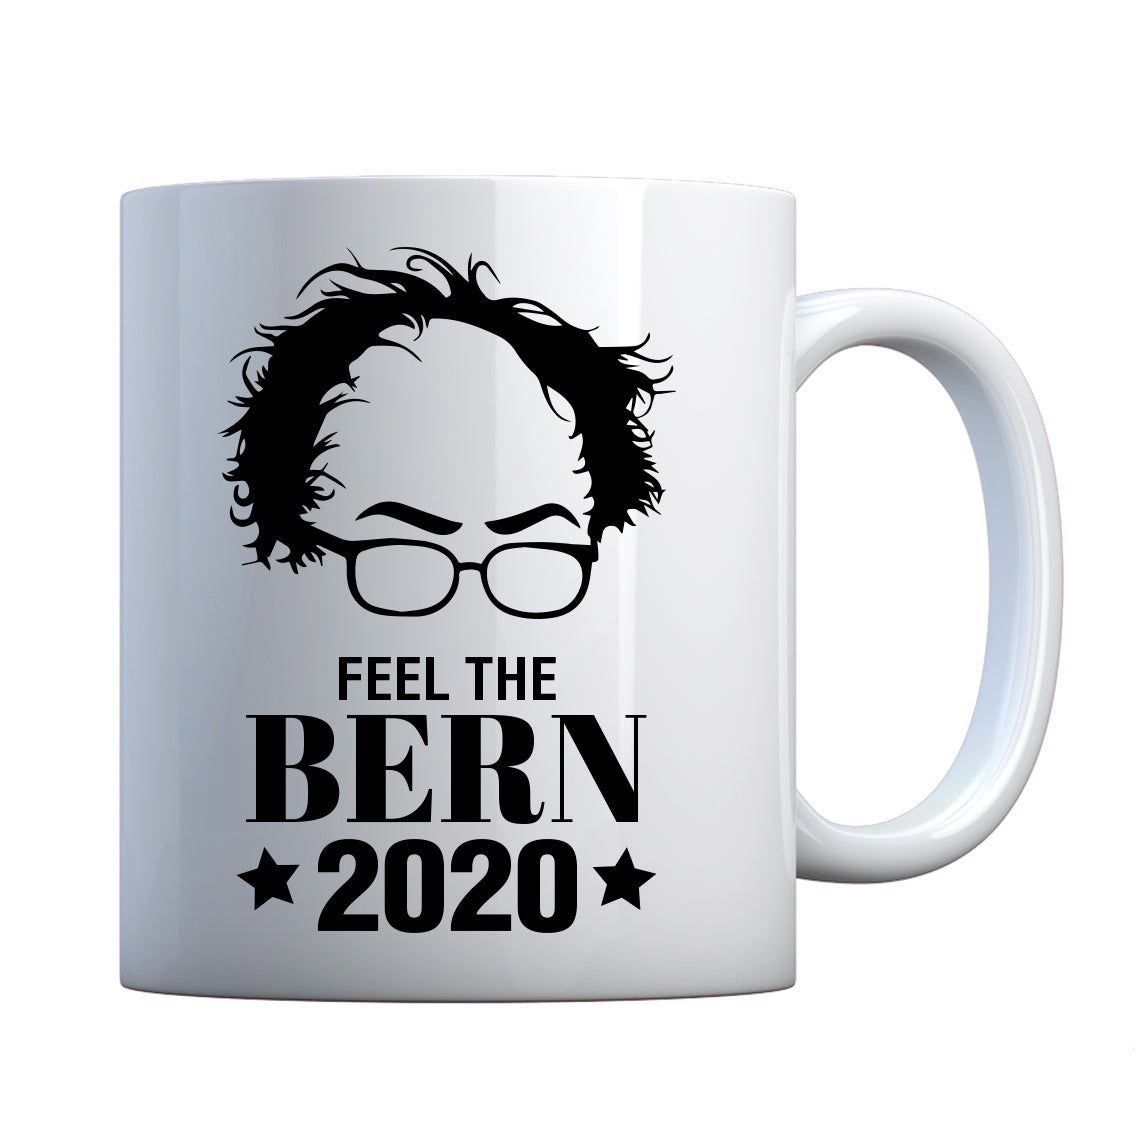 Feel the Bern 2020 Ceramic Gift Mug